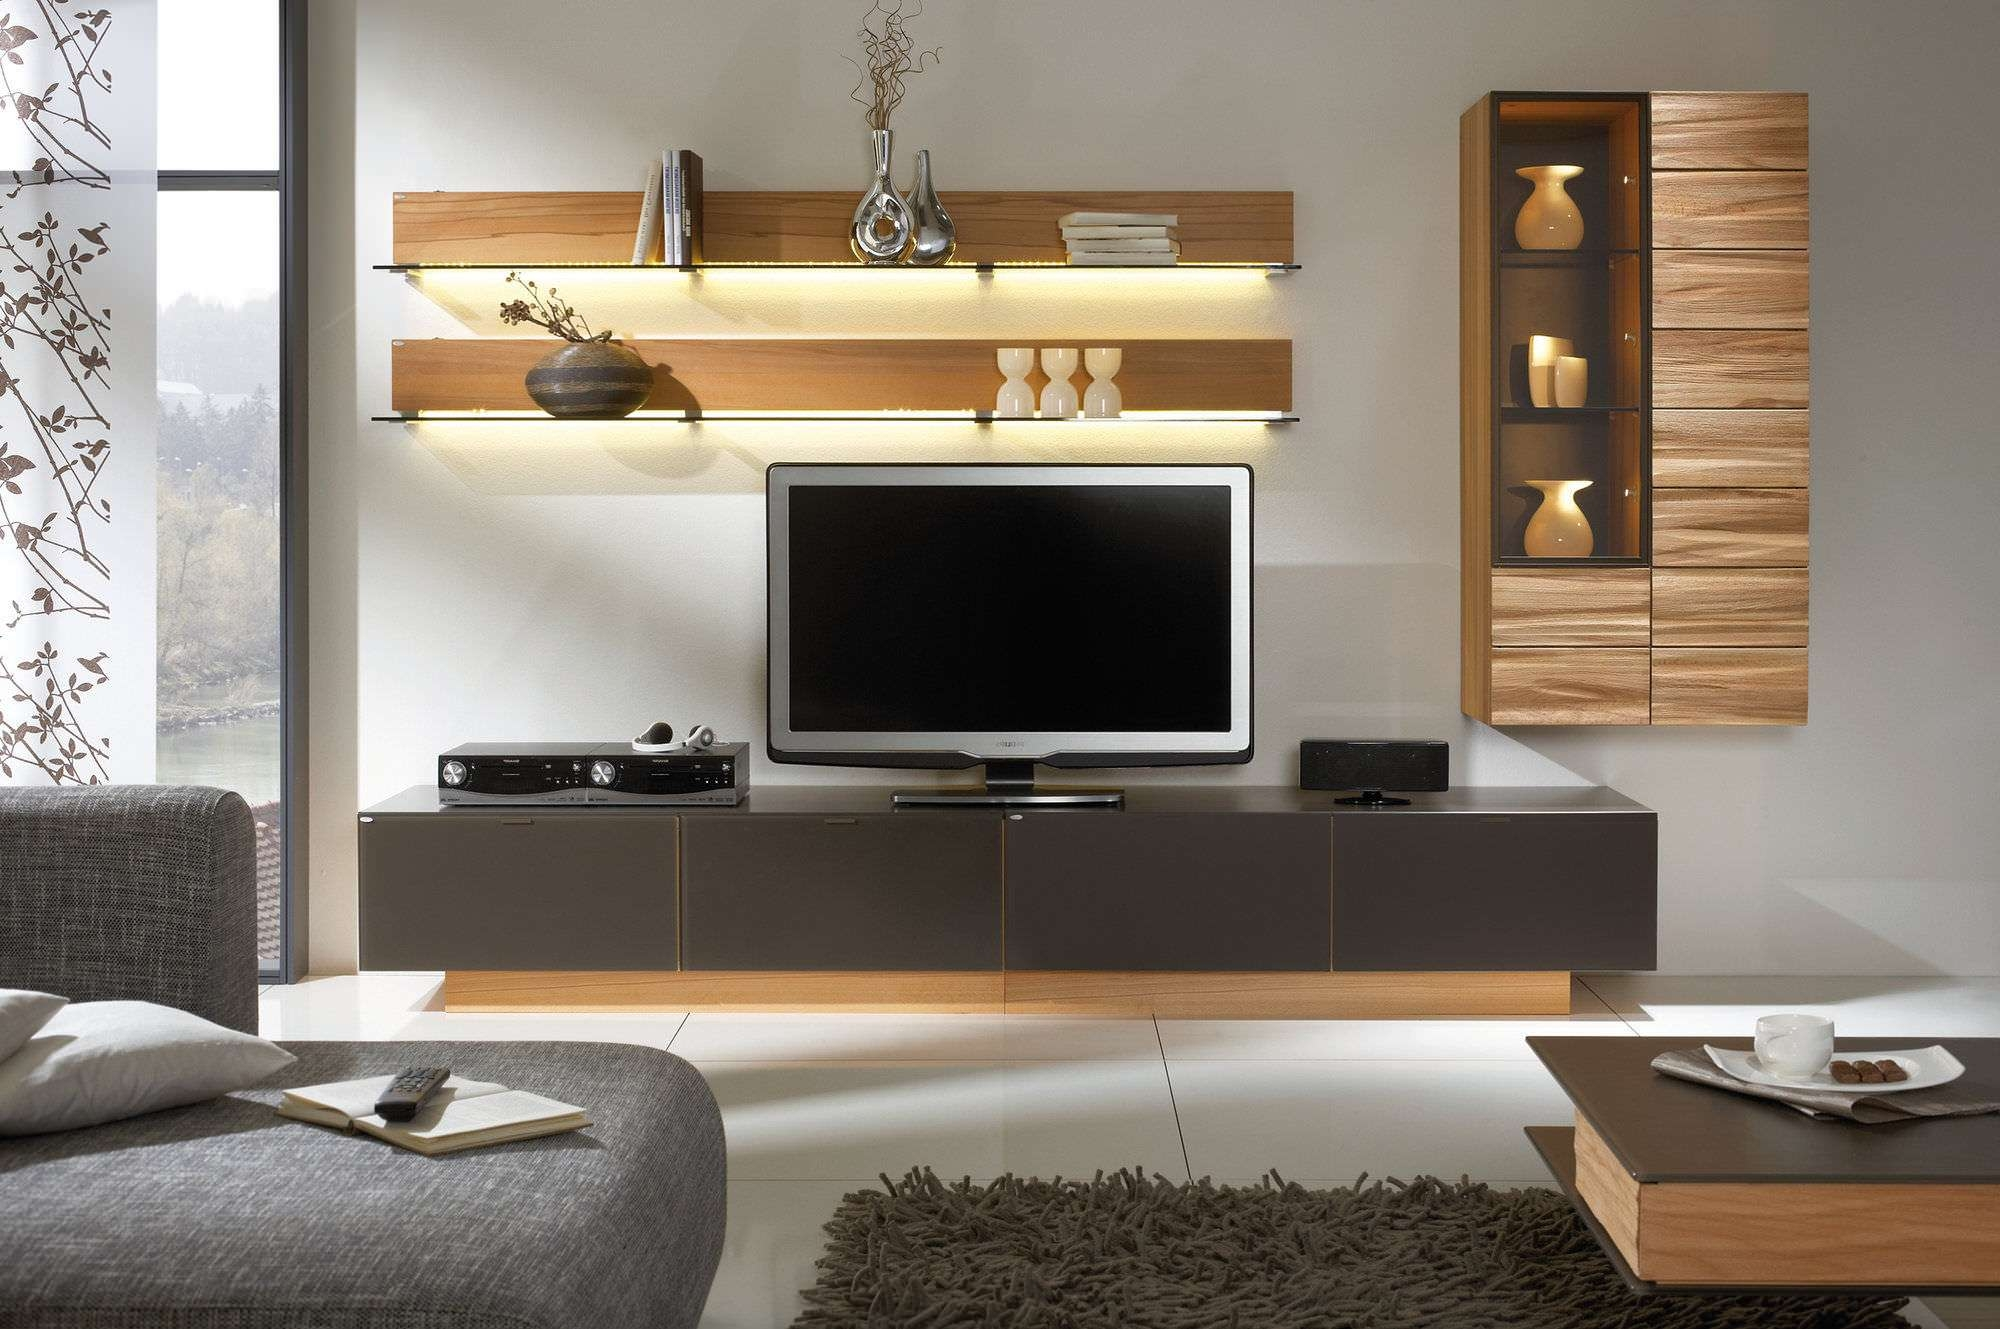 Decoration : Best Tv Wall Mount With Shelf Corner Tv Shelf Tv Pertaining To Full Wall Tv Cabinets (View 6 of 20)